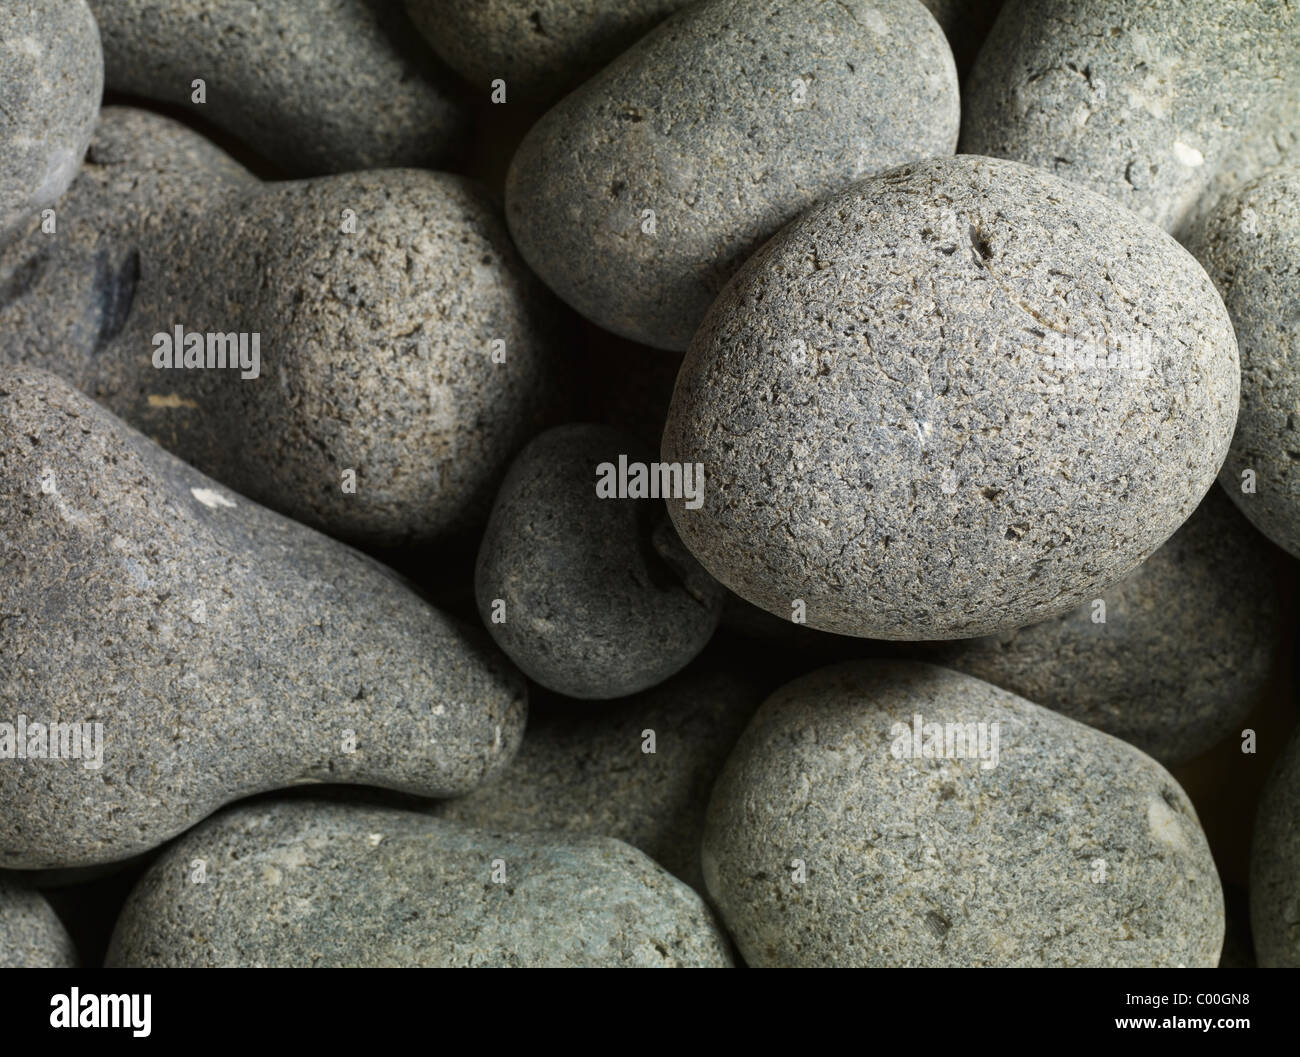 granite pebbles round smooth - Stock Image